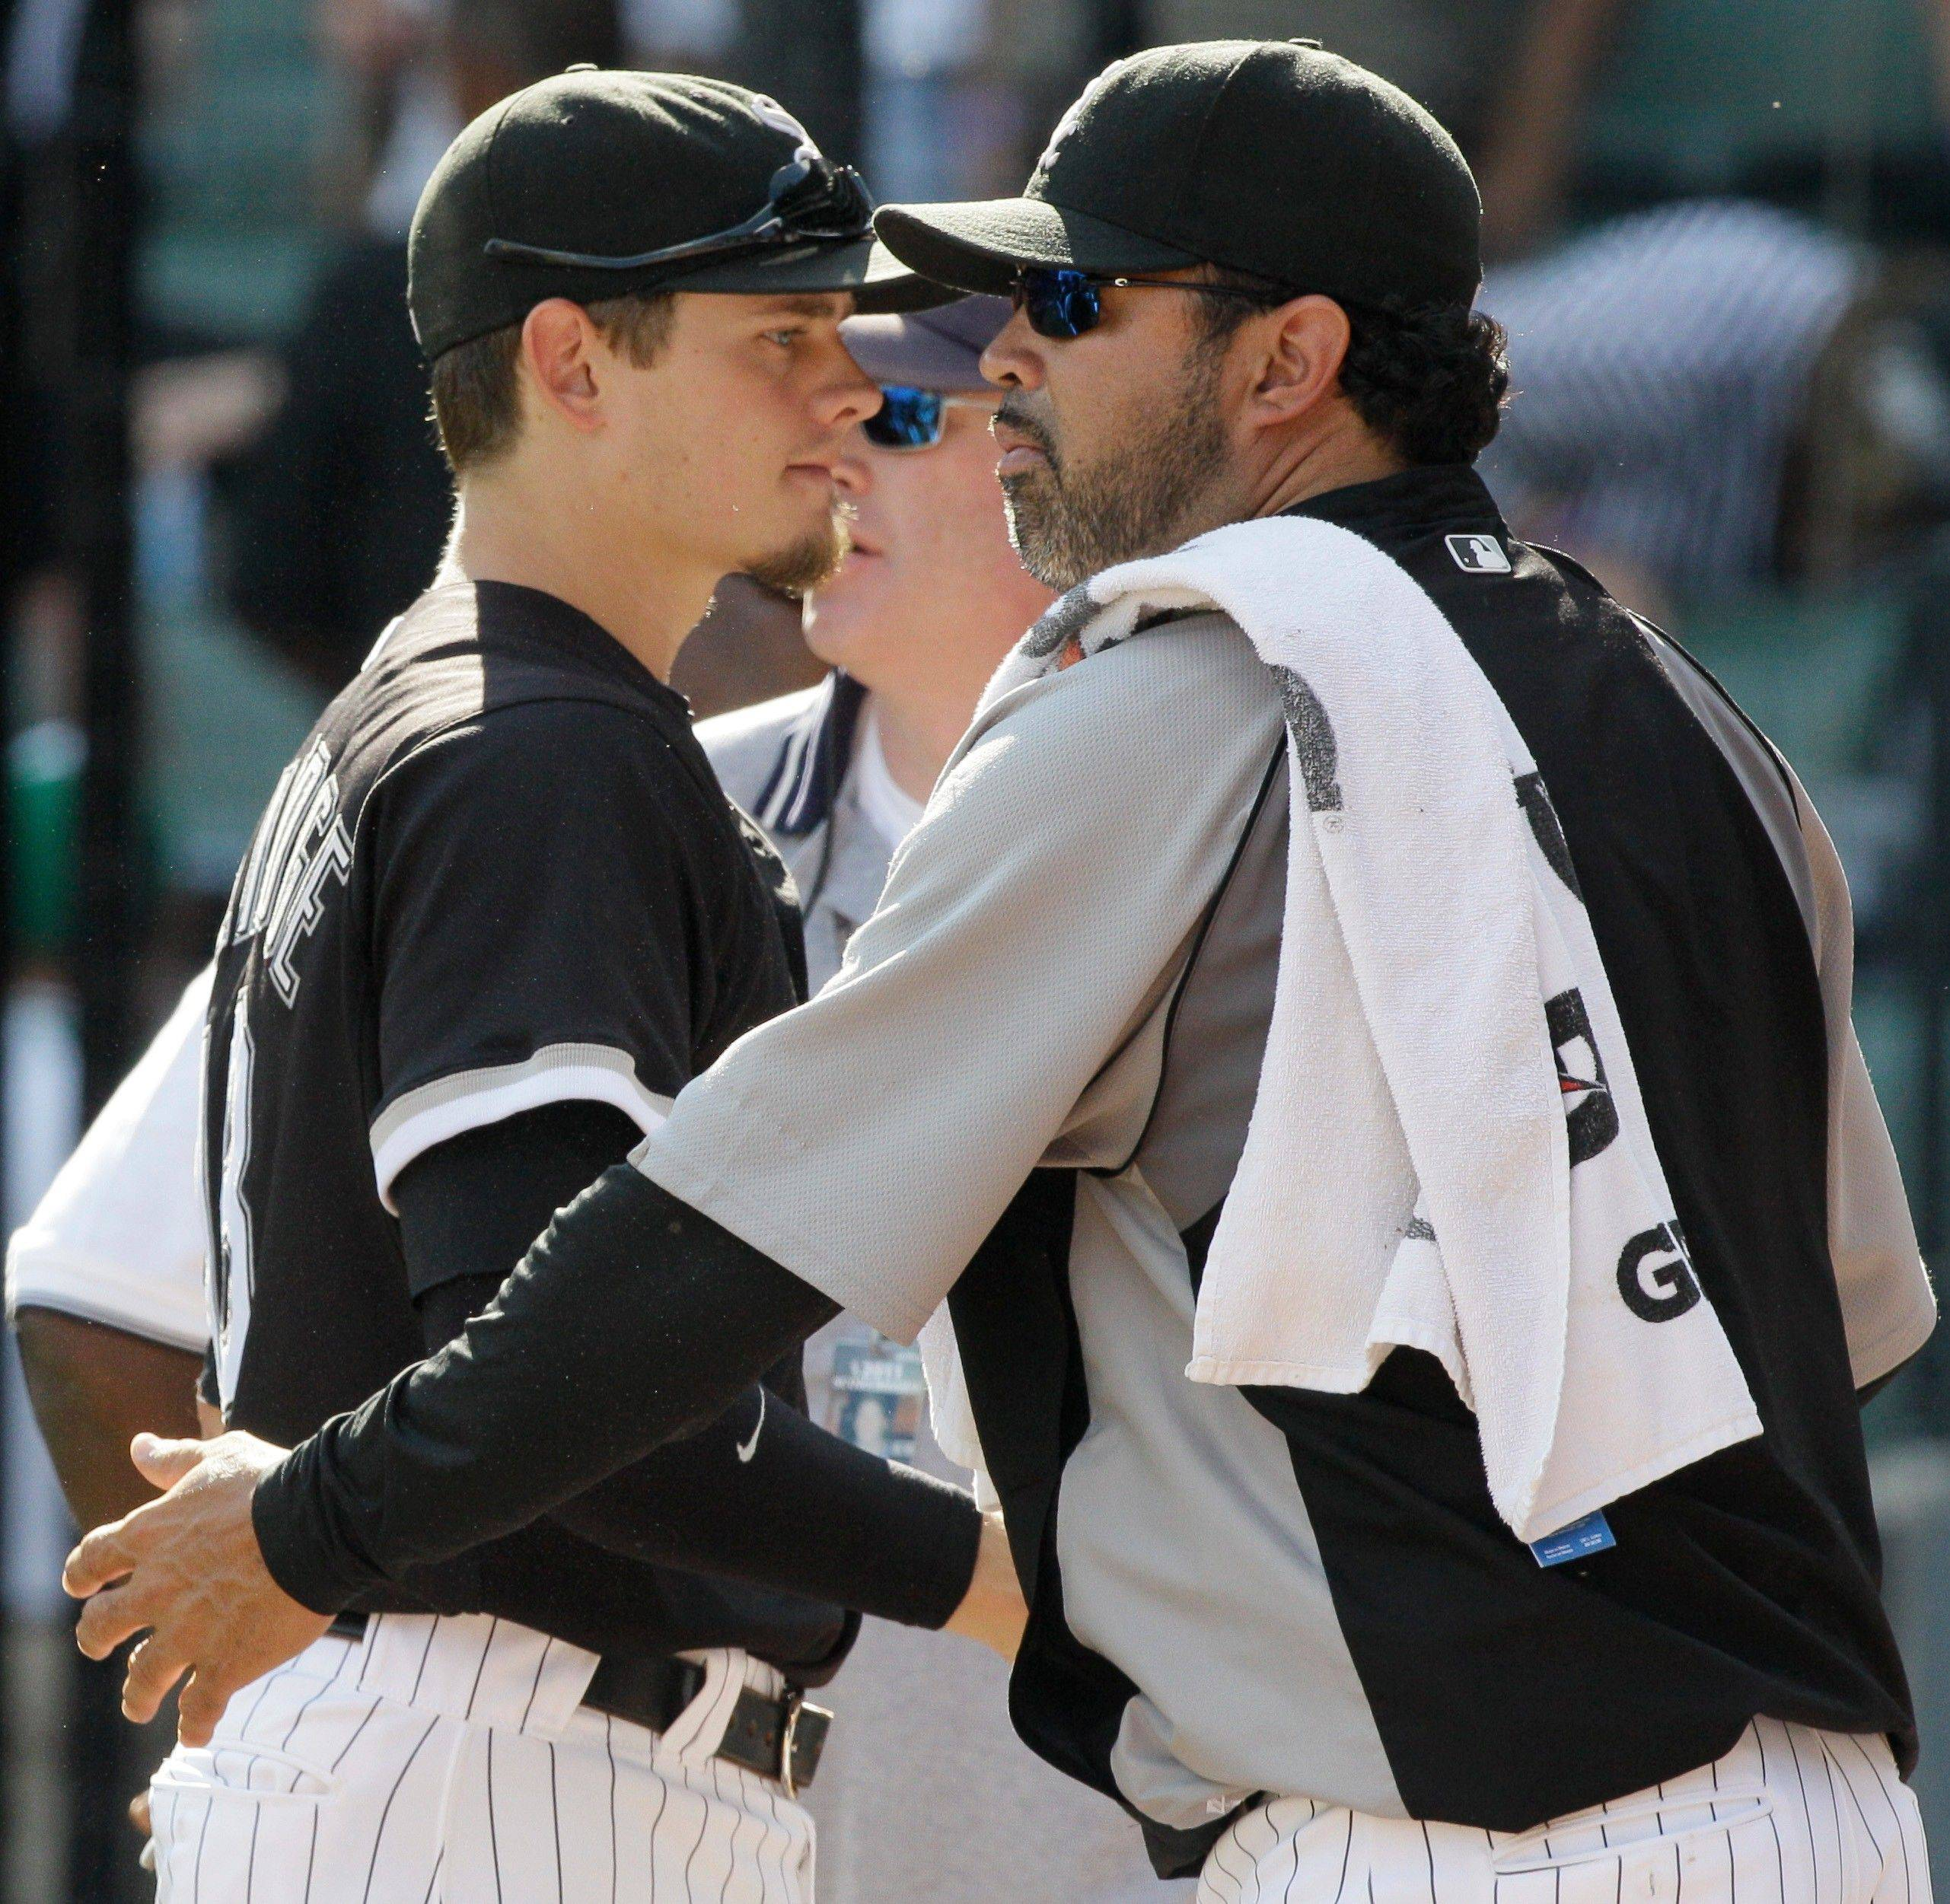 Manager Ozzie Guillen, right, celebrates with Brent Lillibridge after the White Sox� rout of the Rangers on Sunday. Lillibridge got the offense rolling with a 2-run homer in the third inning.